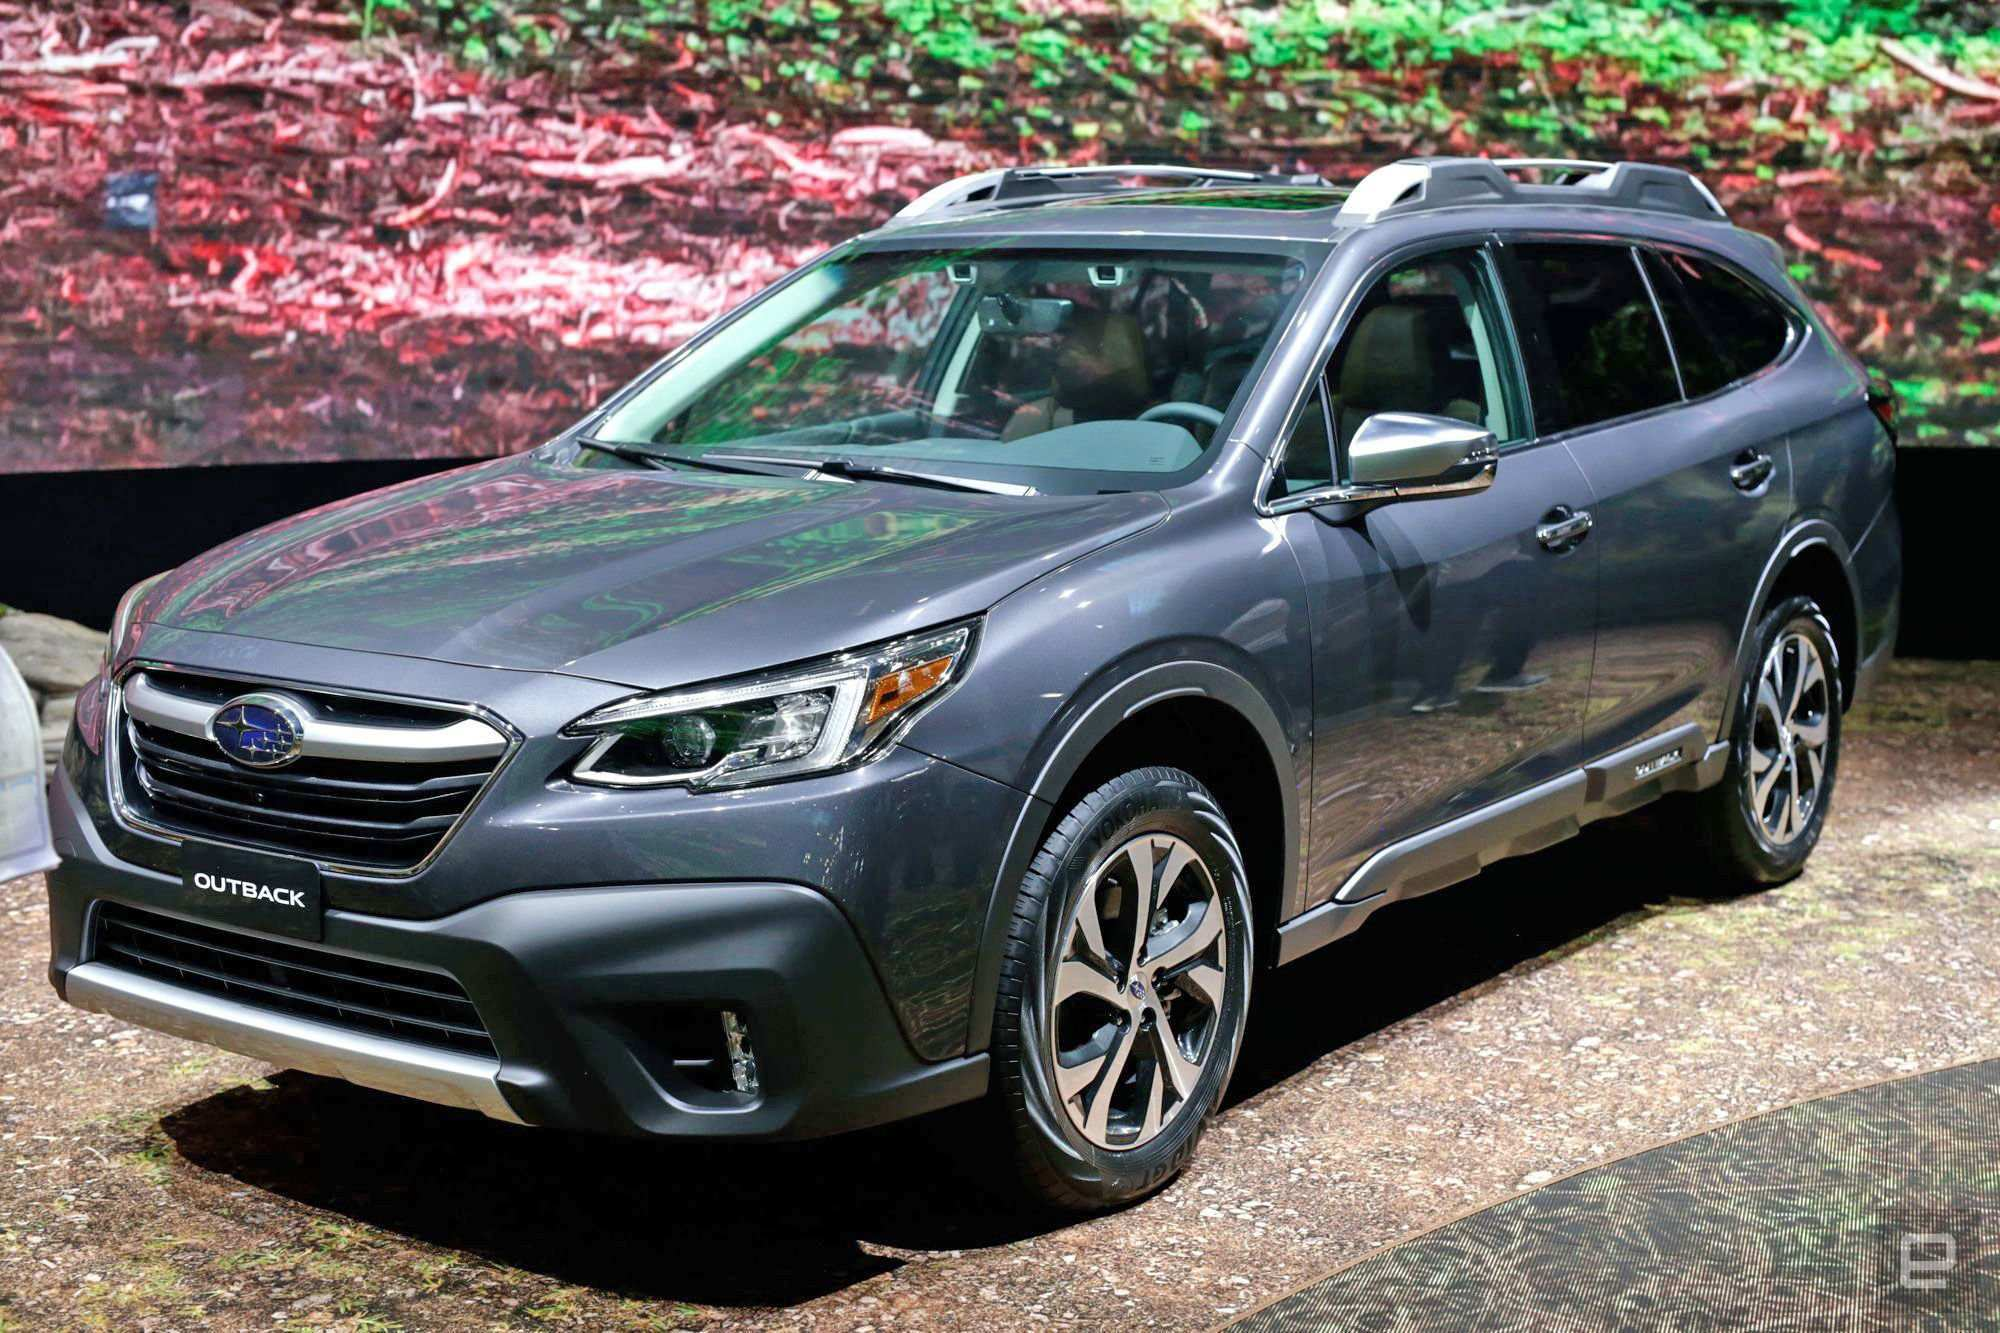 16 Best Subaru 2020 Plan Price